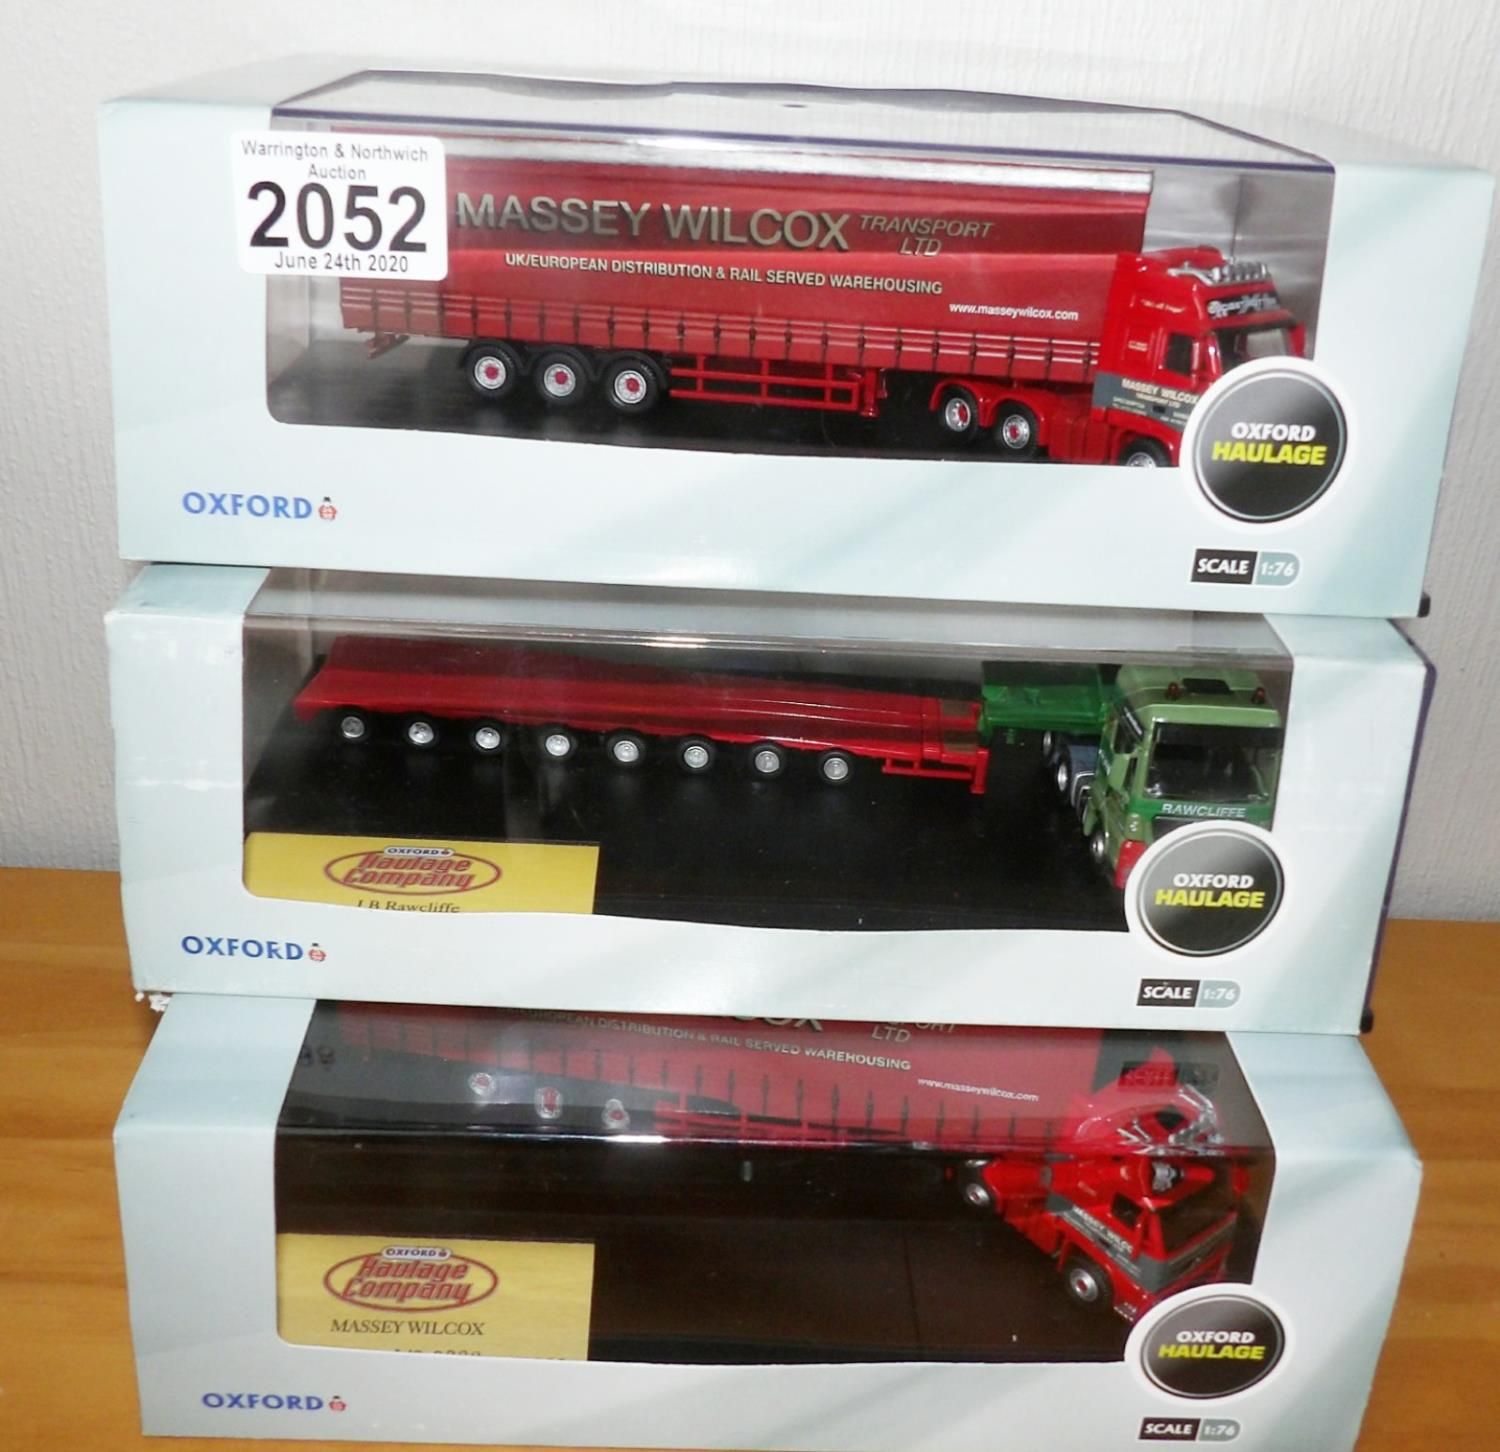 Lot 2052 - Oxford Haulage 1.76 x 3 Rawcliffe + 2 x Massey Wilcox Ltd Editions. P&P Group 2 (£18+VAT for the